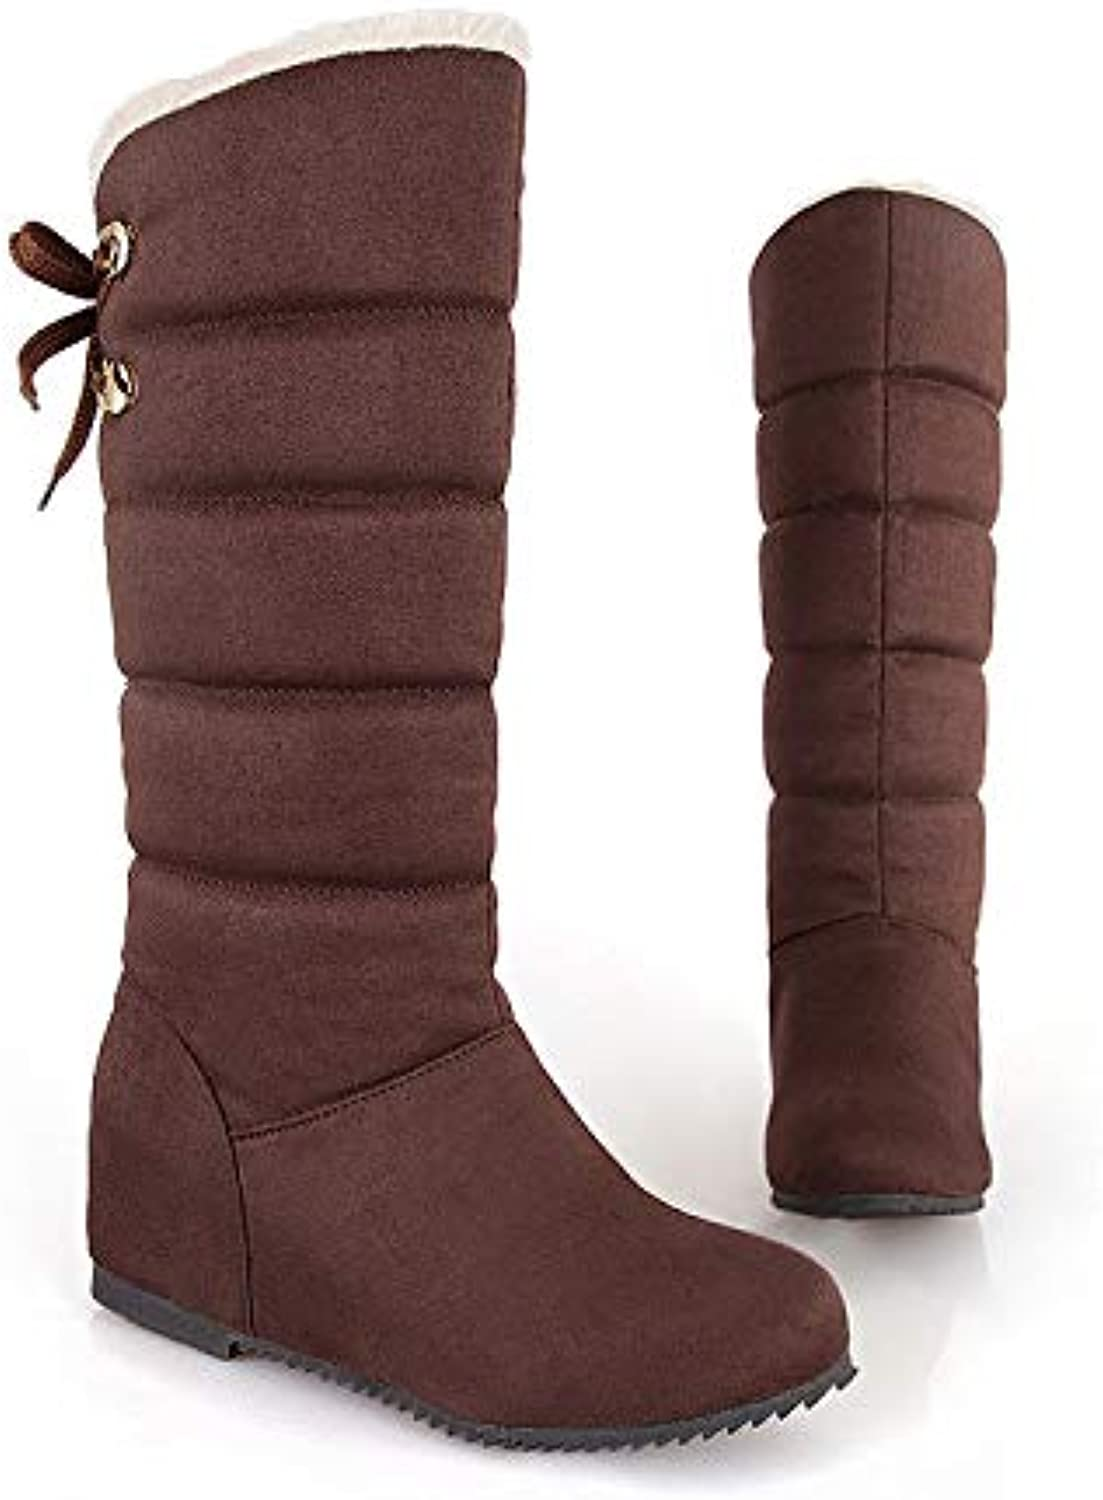 Top Shishang Increased Wedges in The Winter, Casual Thick Hair Warm Snow Boots Martin Boots Female